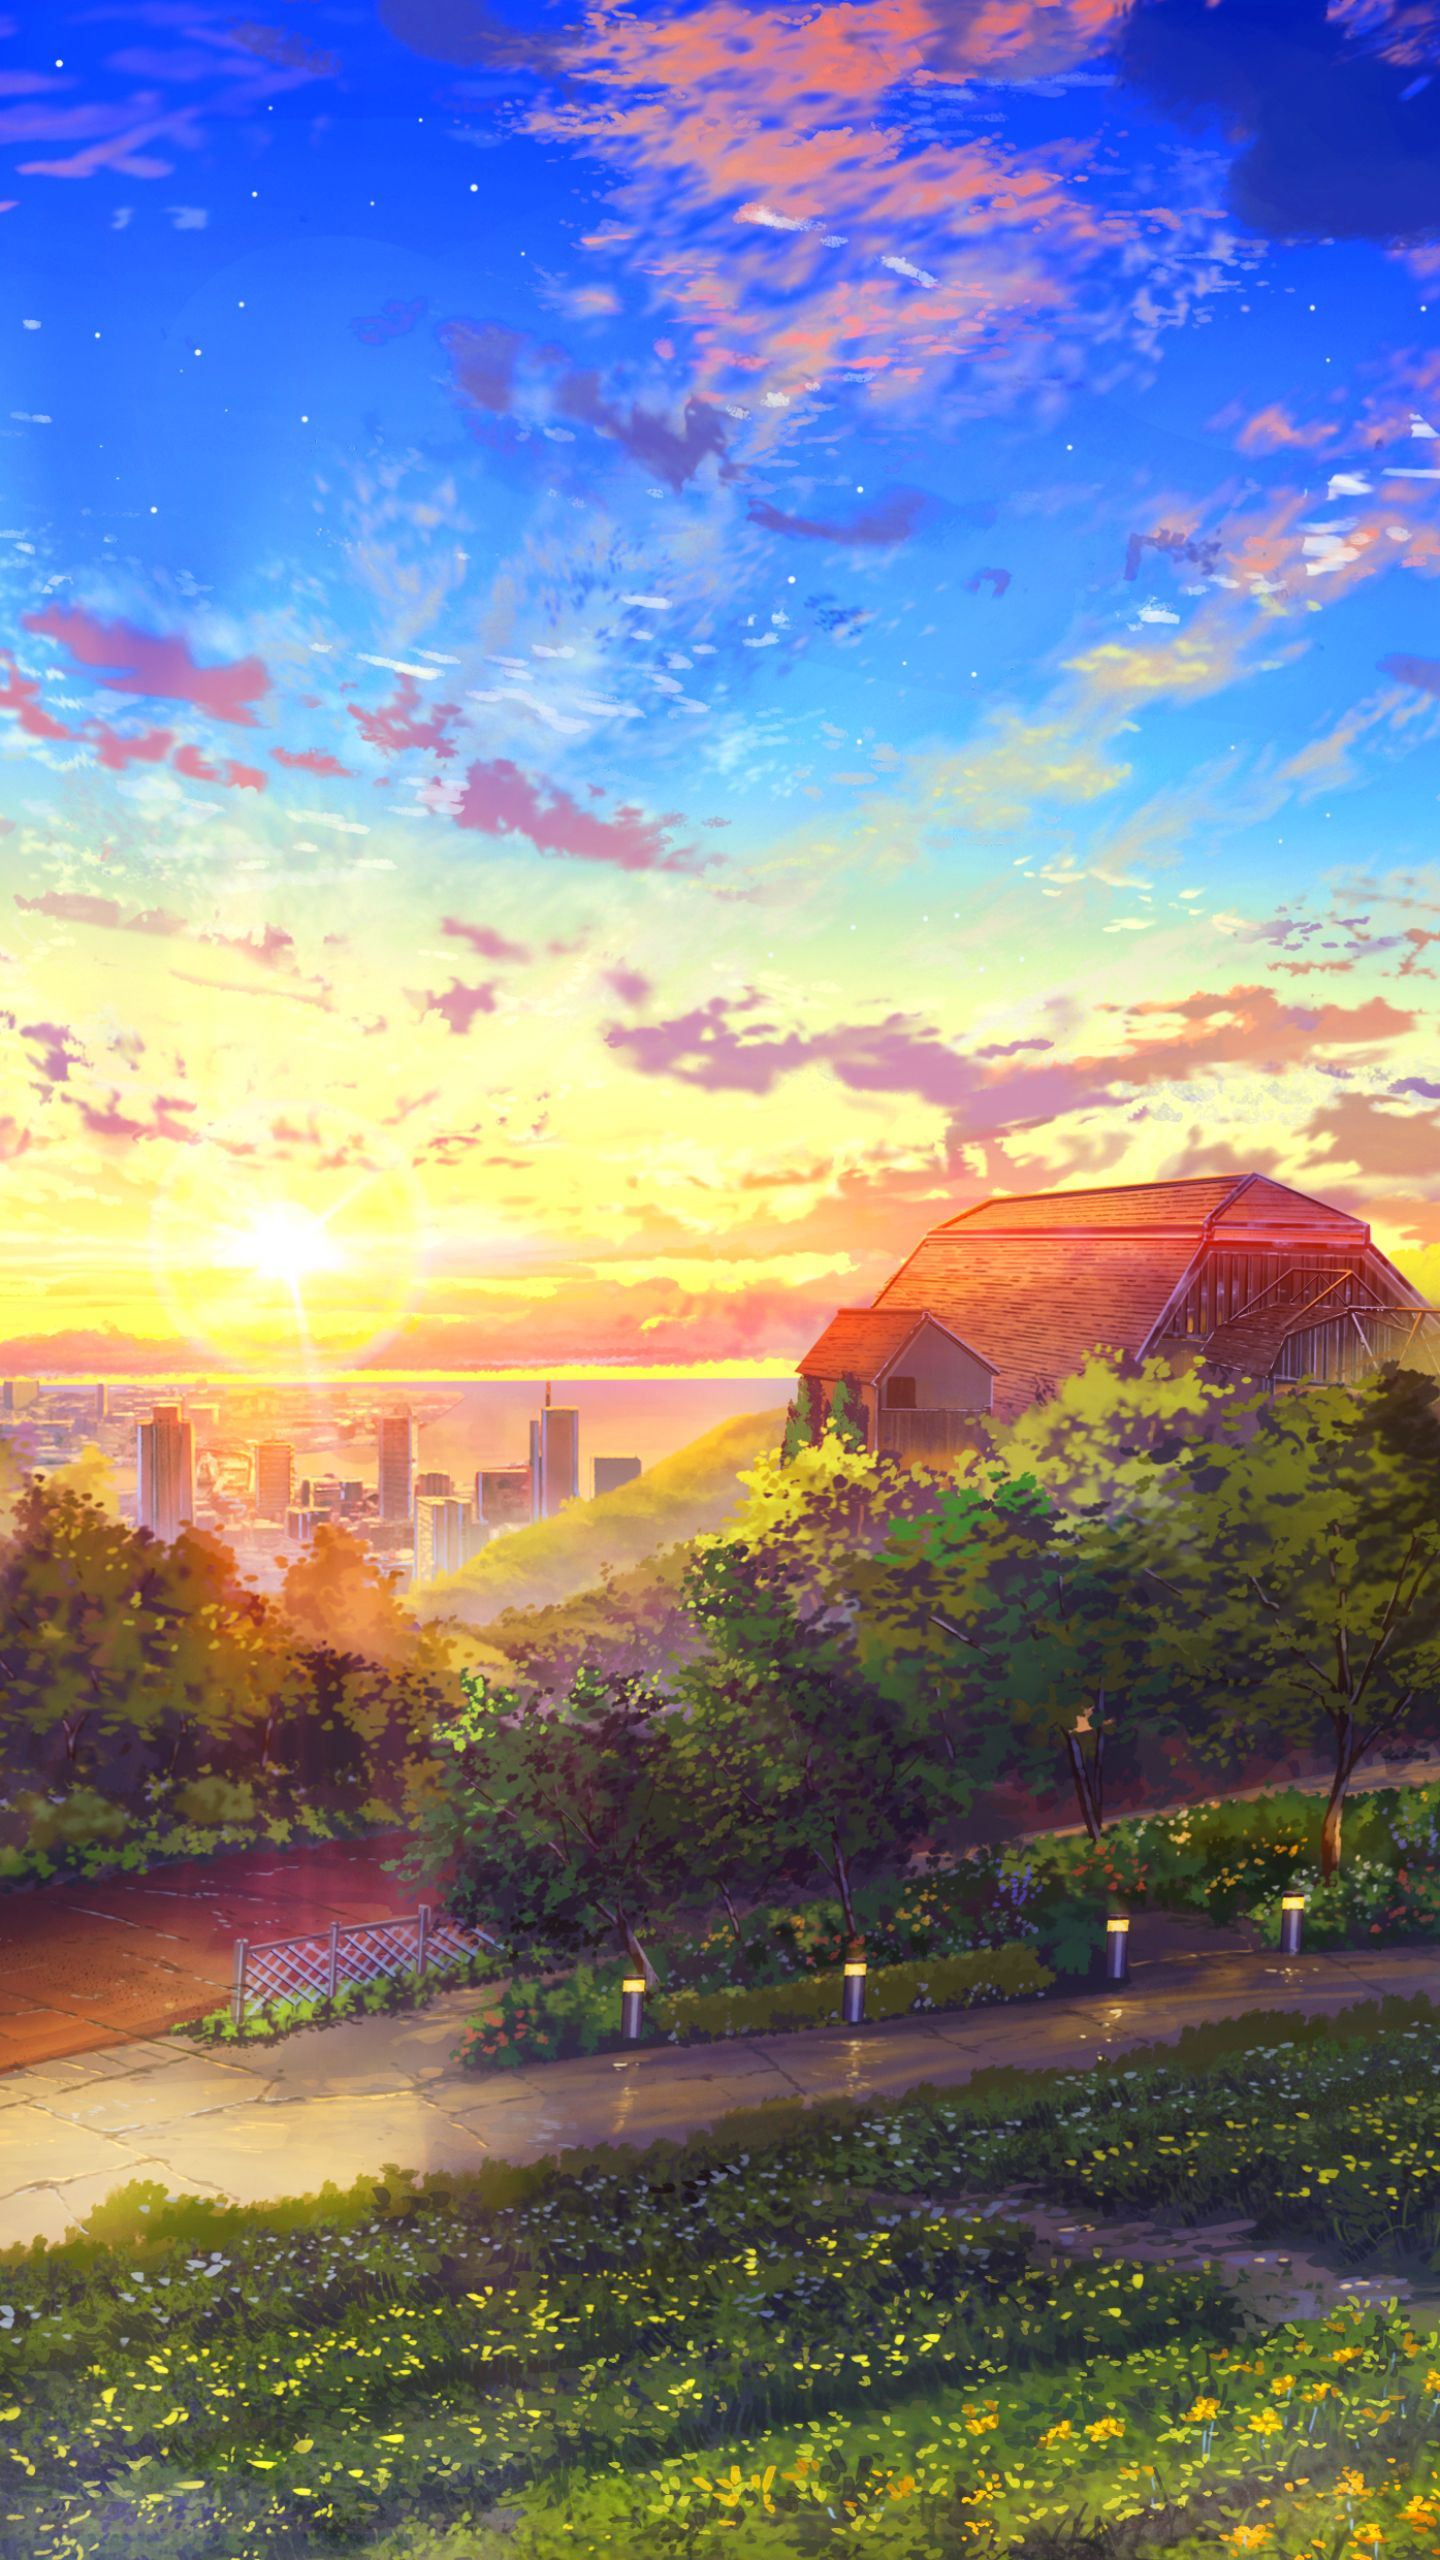 Anime Landscape Wallpaper Phone Anime Landscape 1440x2560 Wallpaper Id 793667 Mobile Abyss Anime Scenery In 2020 Anime Scenery Landscape Wallpaper Scenery Wallpaper